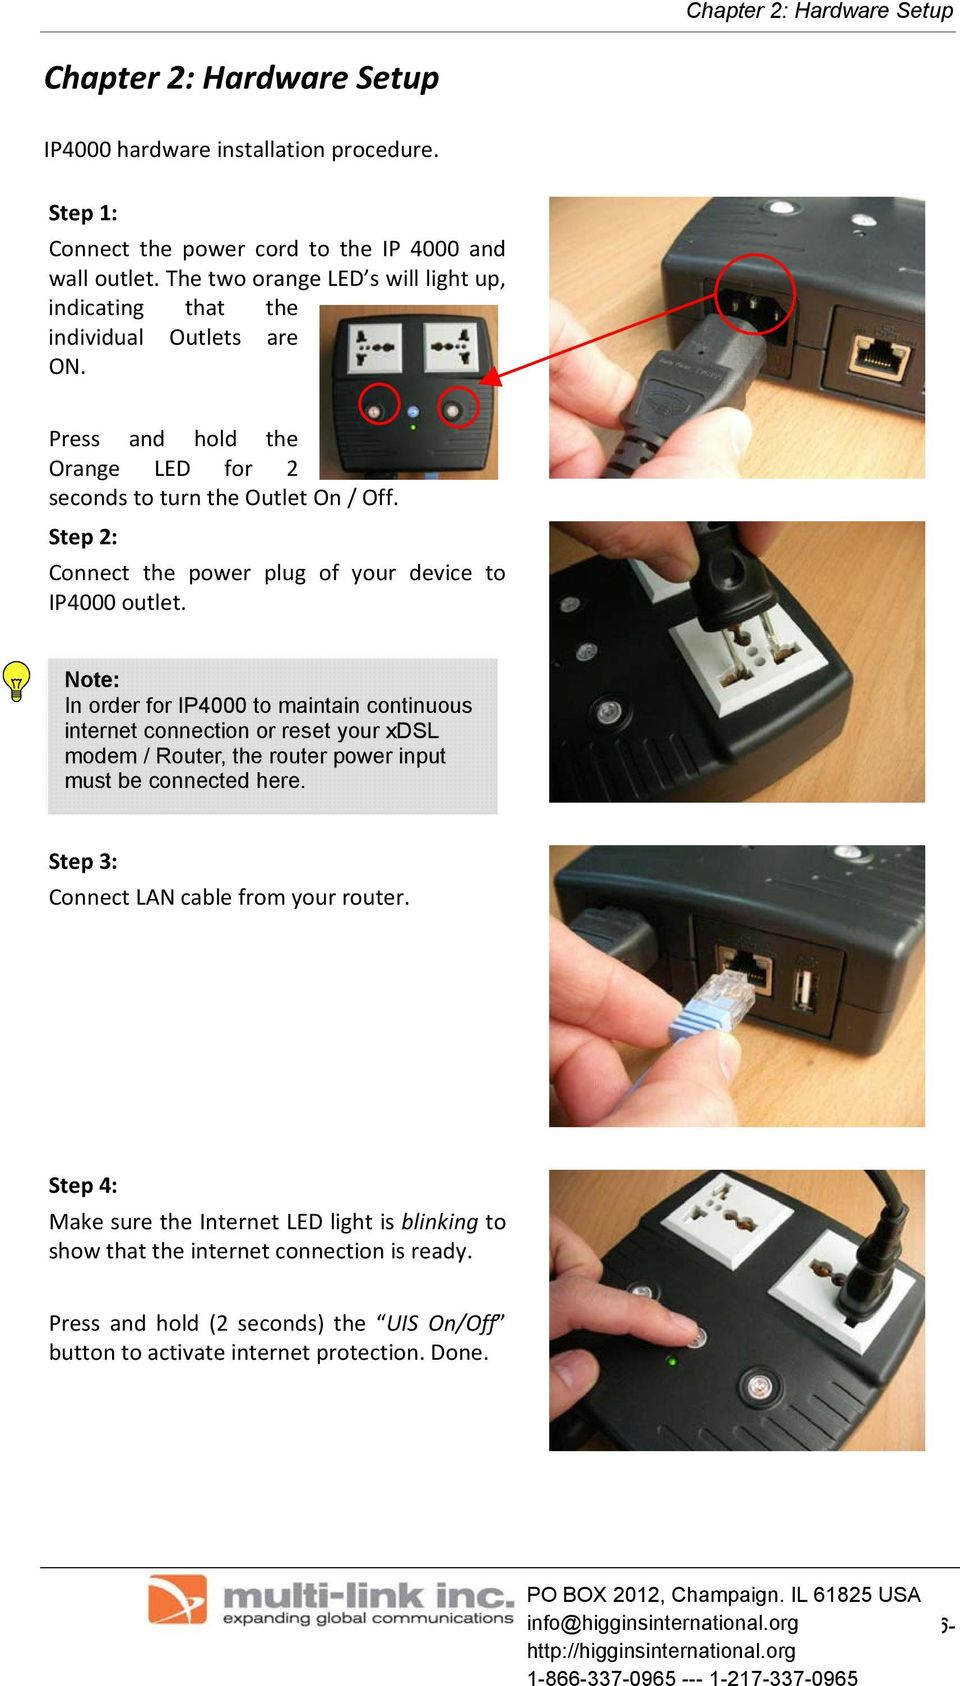 Step 2: Connect the power plug of your device to IP4000 outlet.